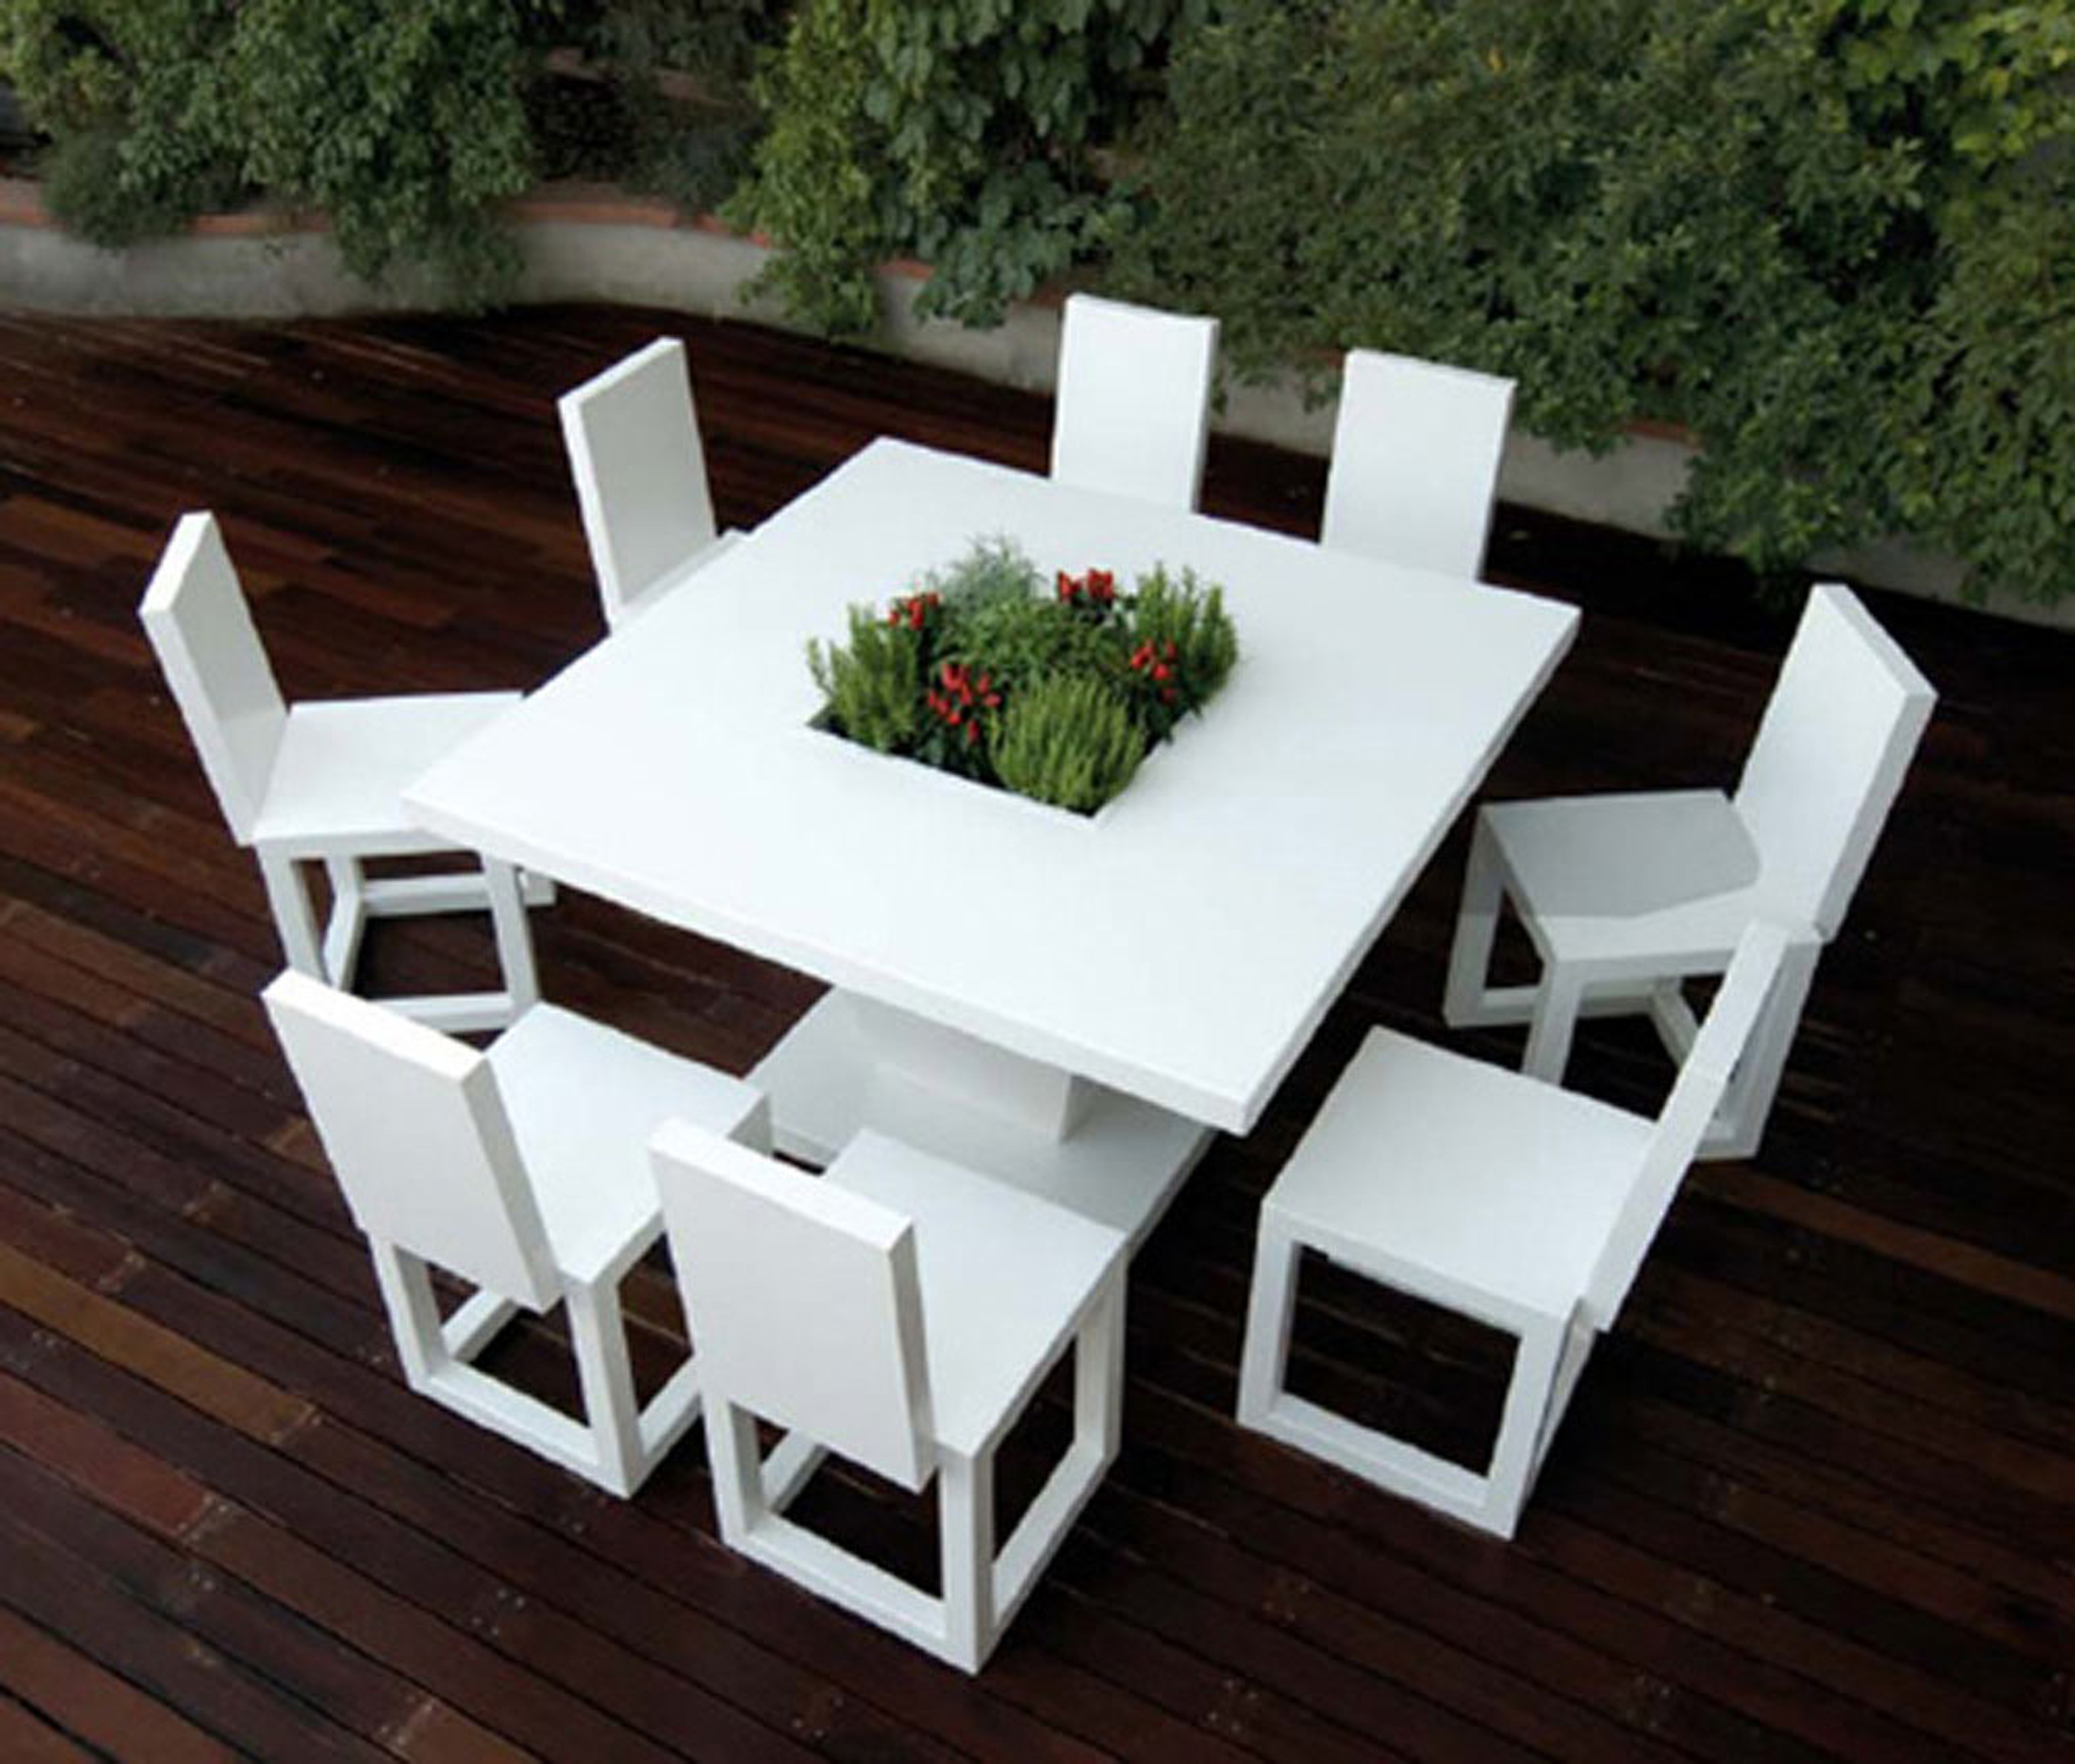 Luxury Modern Outdoor Design Idea With Square White Dining Table With Green Plants And White Chairs Impressive Modern Outdoor Design Ideas (Image 109 of 123)